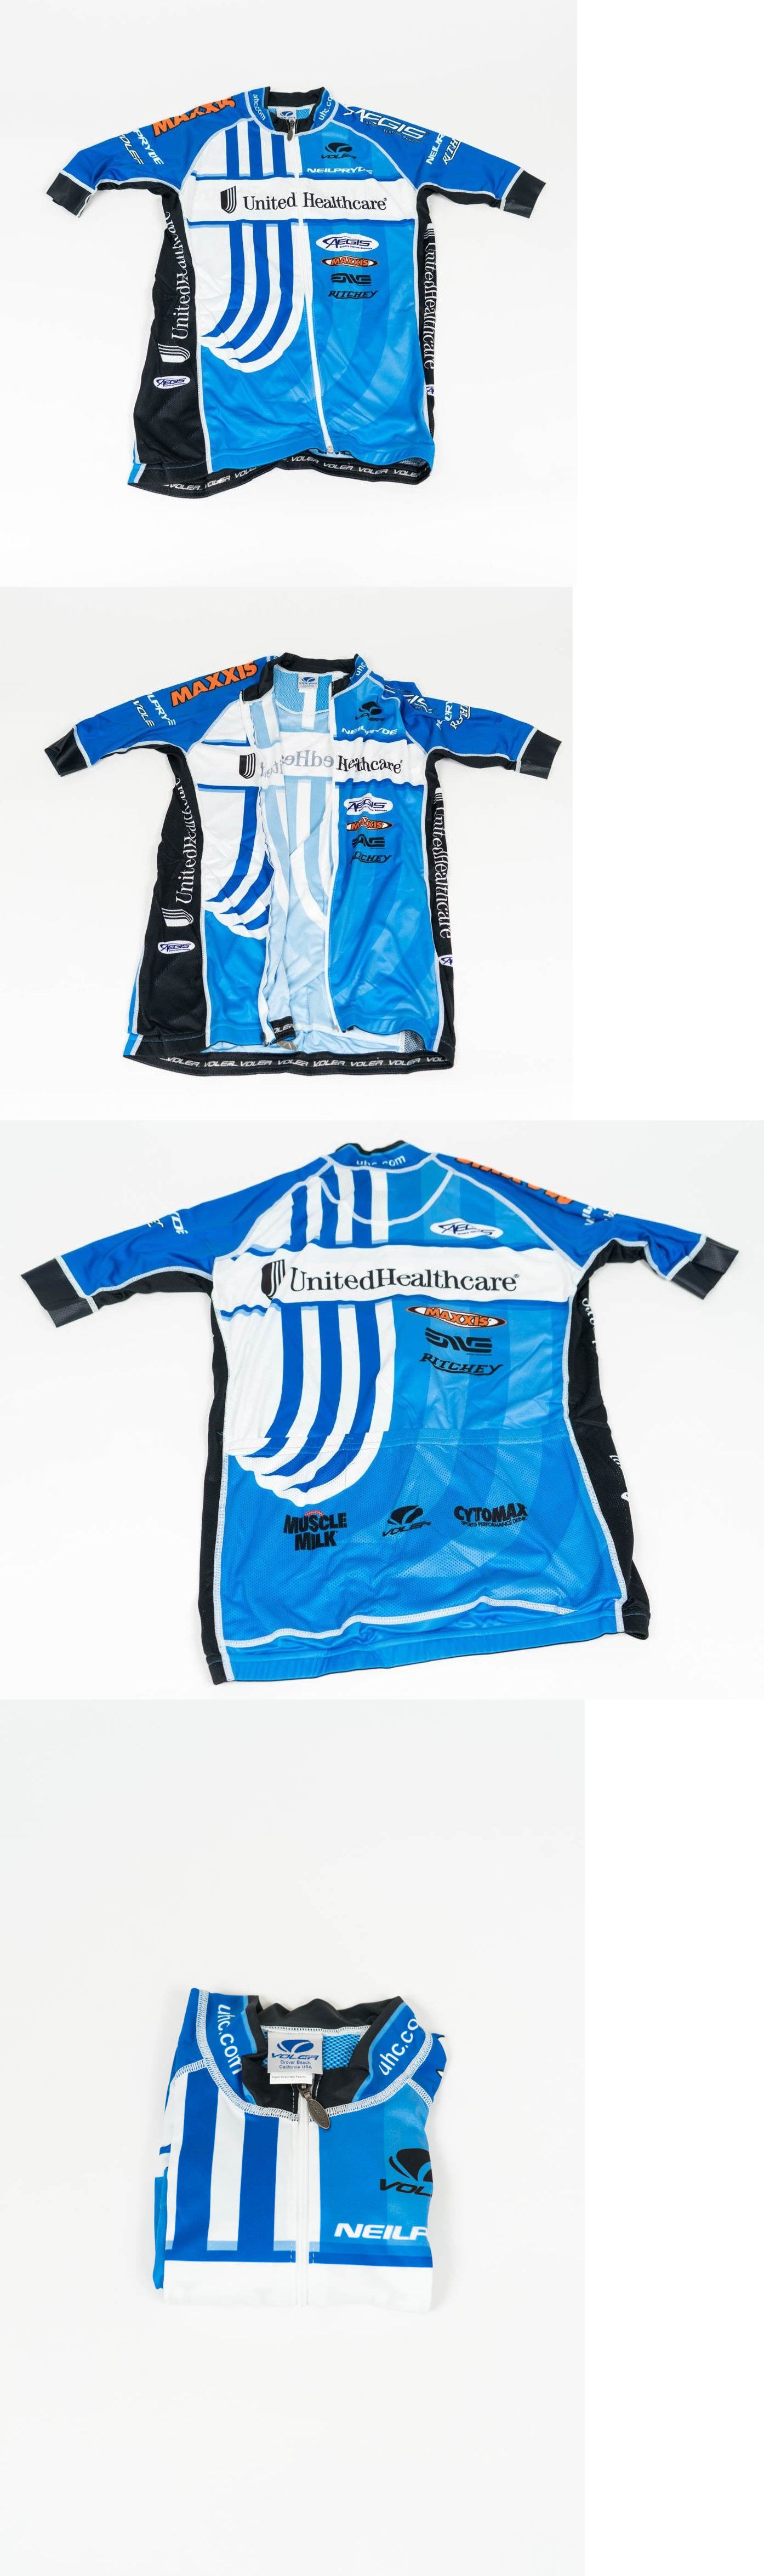 Cycling Clothing 158990  New 2013 Men S Voler Uhc Pro Cycling Ss Race Jersey 10b06ccd0